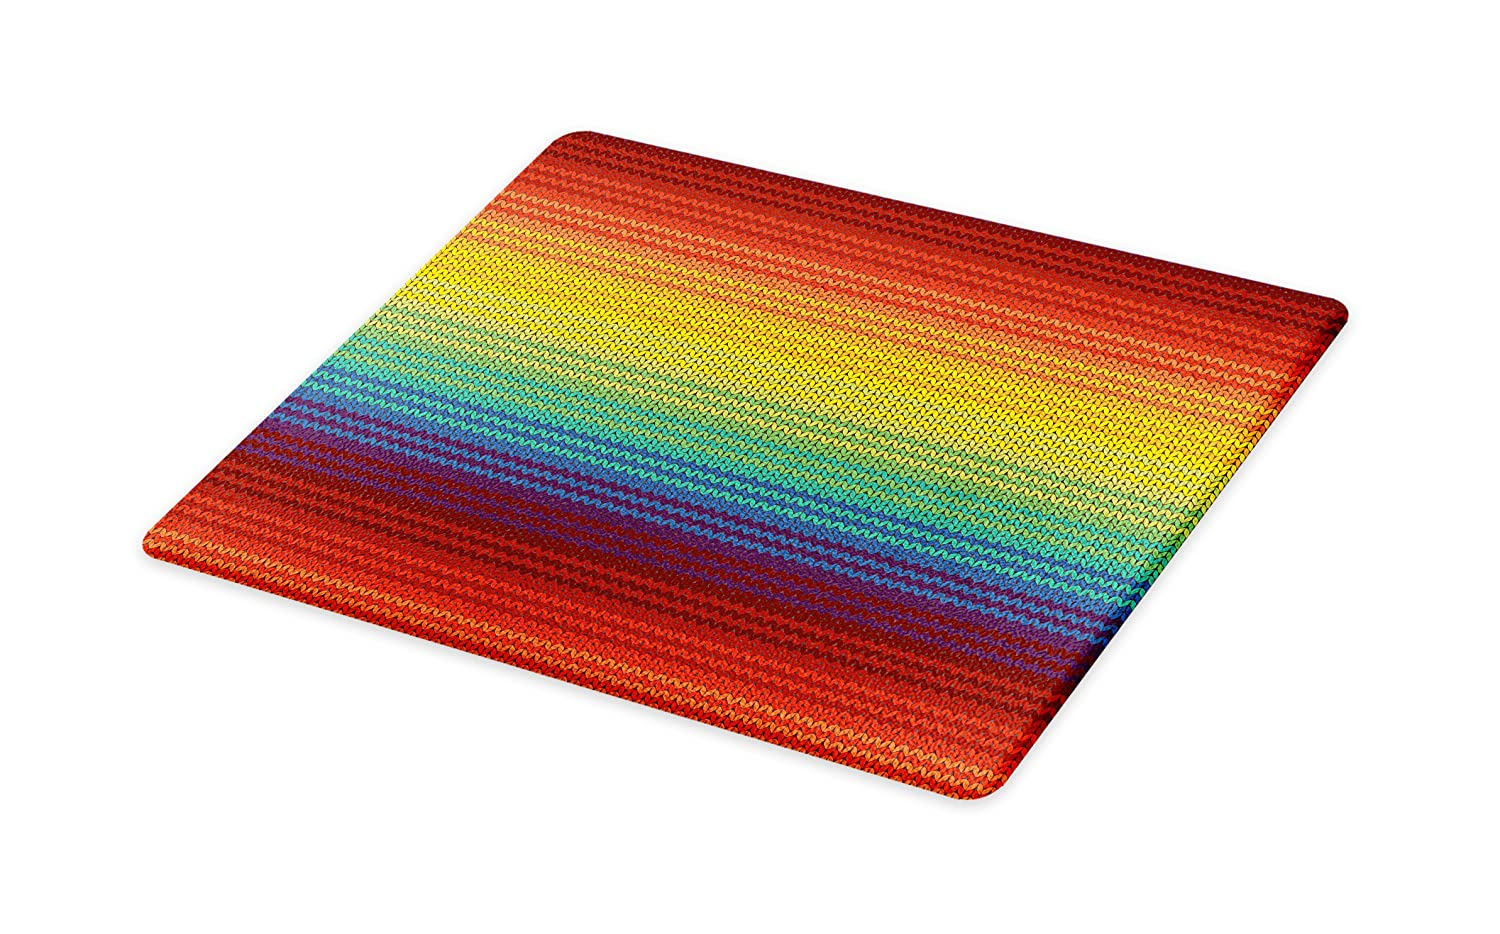 Lunarable Striped Cutting Board Small Size Decorative Tempered Glass Cutting and Serving Board Multicolor Mexican Knitting Pattern Inspired Vibrant Colored Chevron Latin American Culture